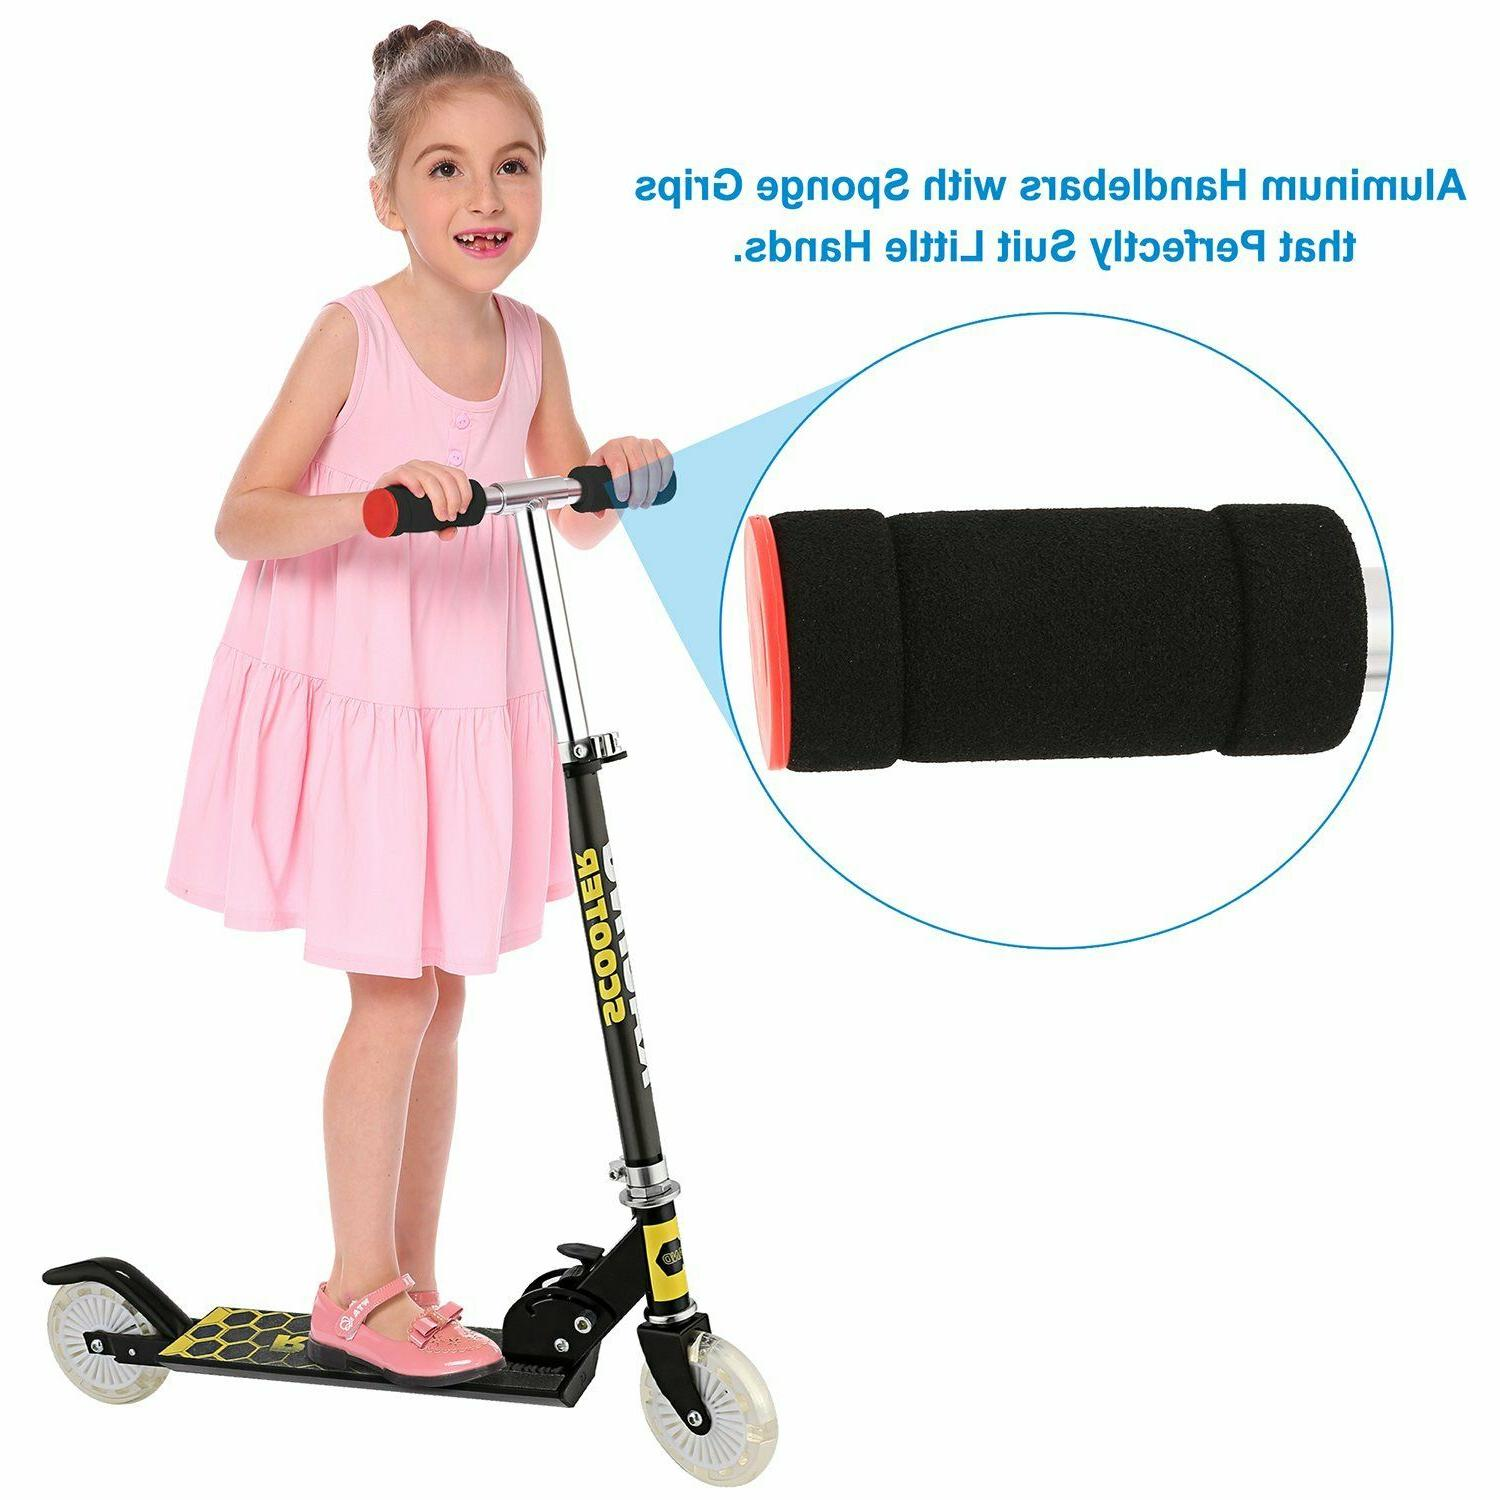 Scooter Deluxe for Kick Girls w/ LED Wheels Kids